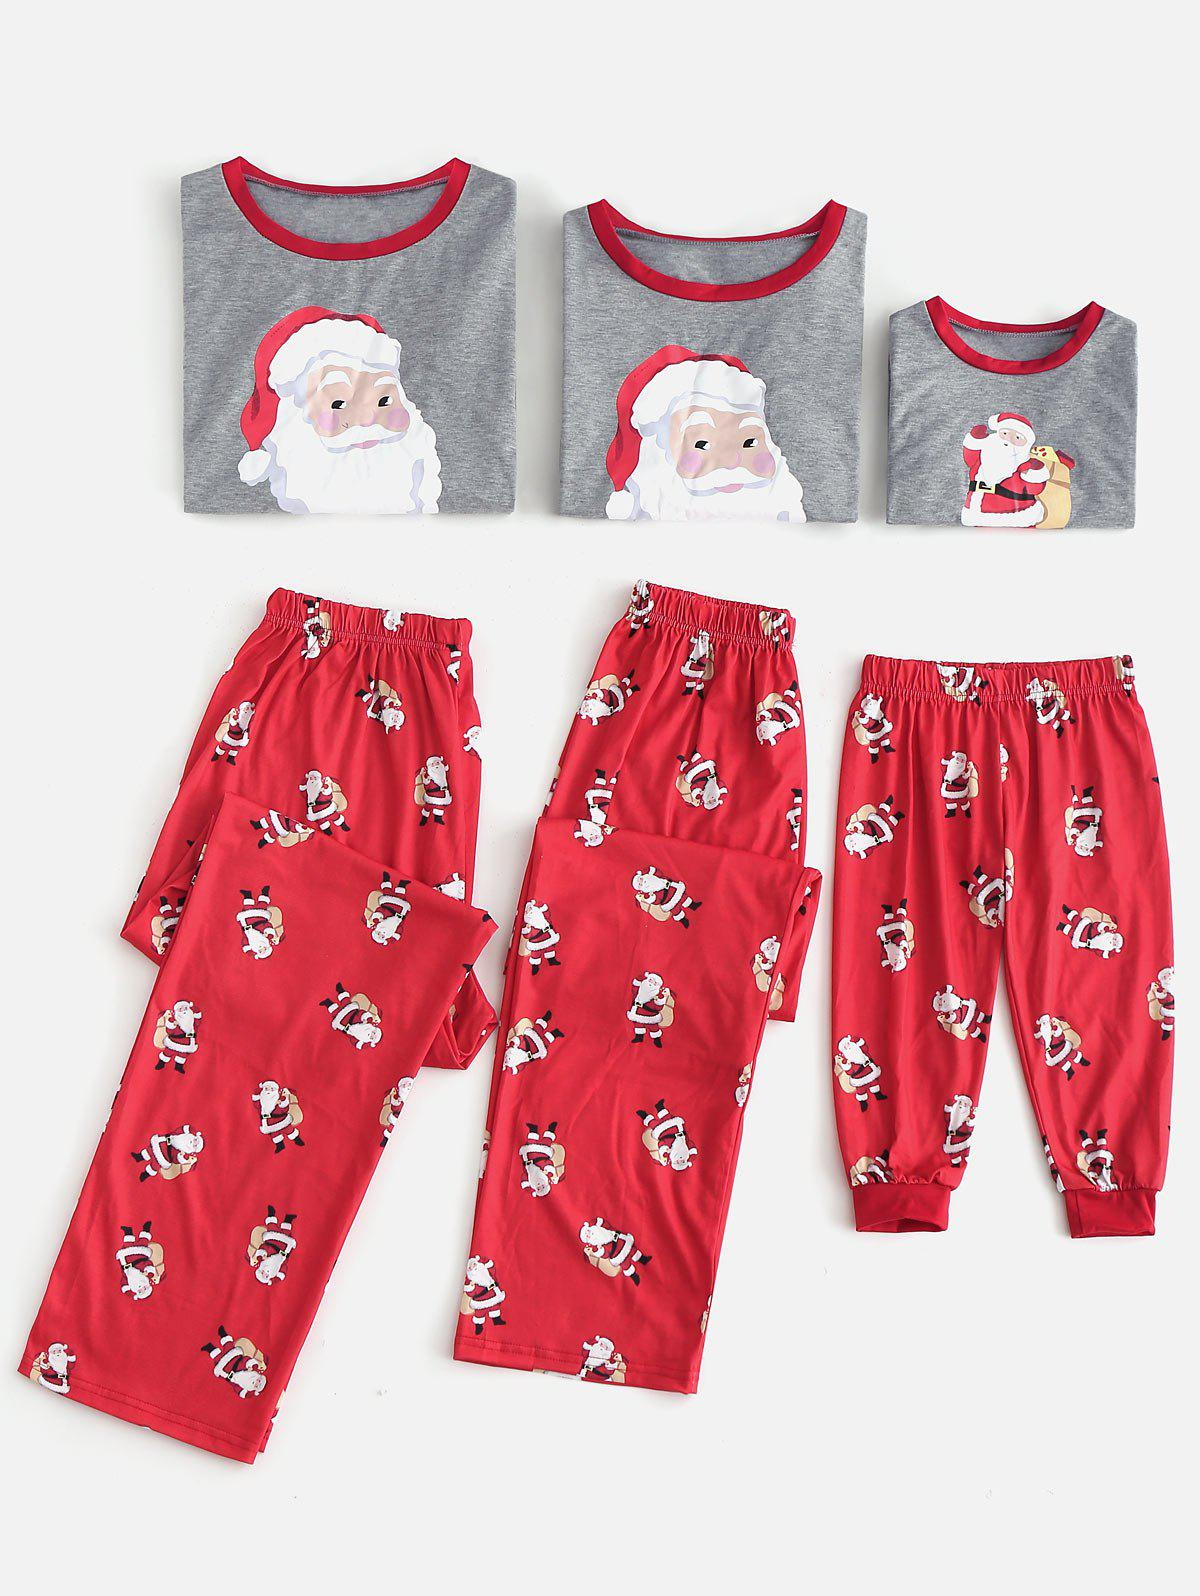 Store Santa Claus Patterned Matching Christmas Family Pajamas